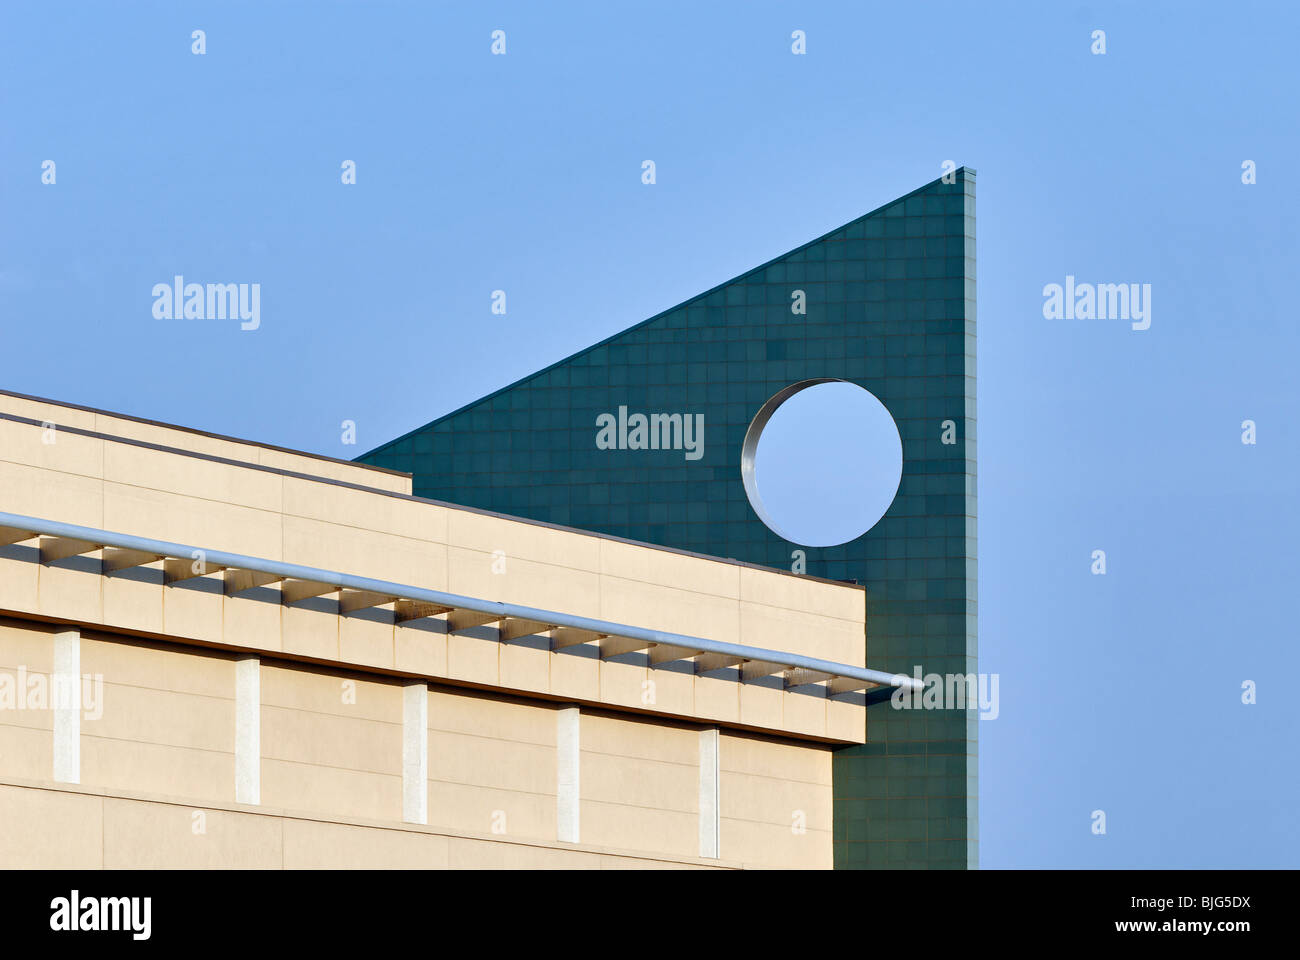 Architectural Detail on the South wing of the Kentucky Fair and Exposition Center in Louisville, Kentucky - Stock Image